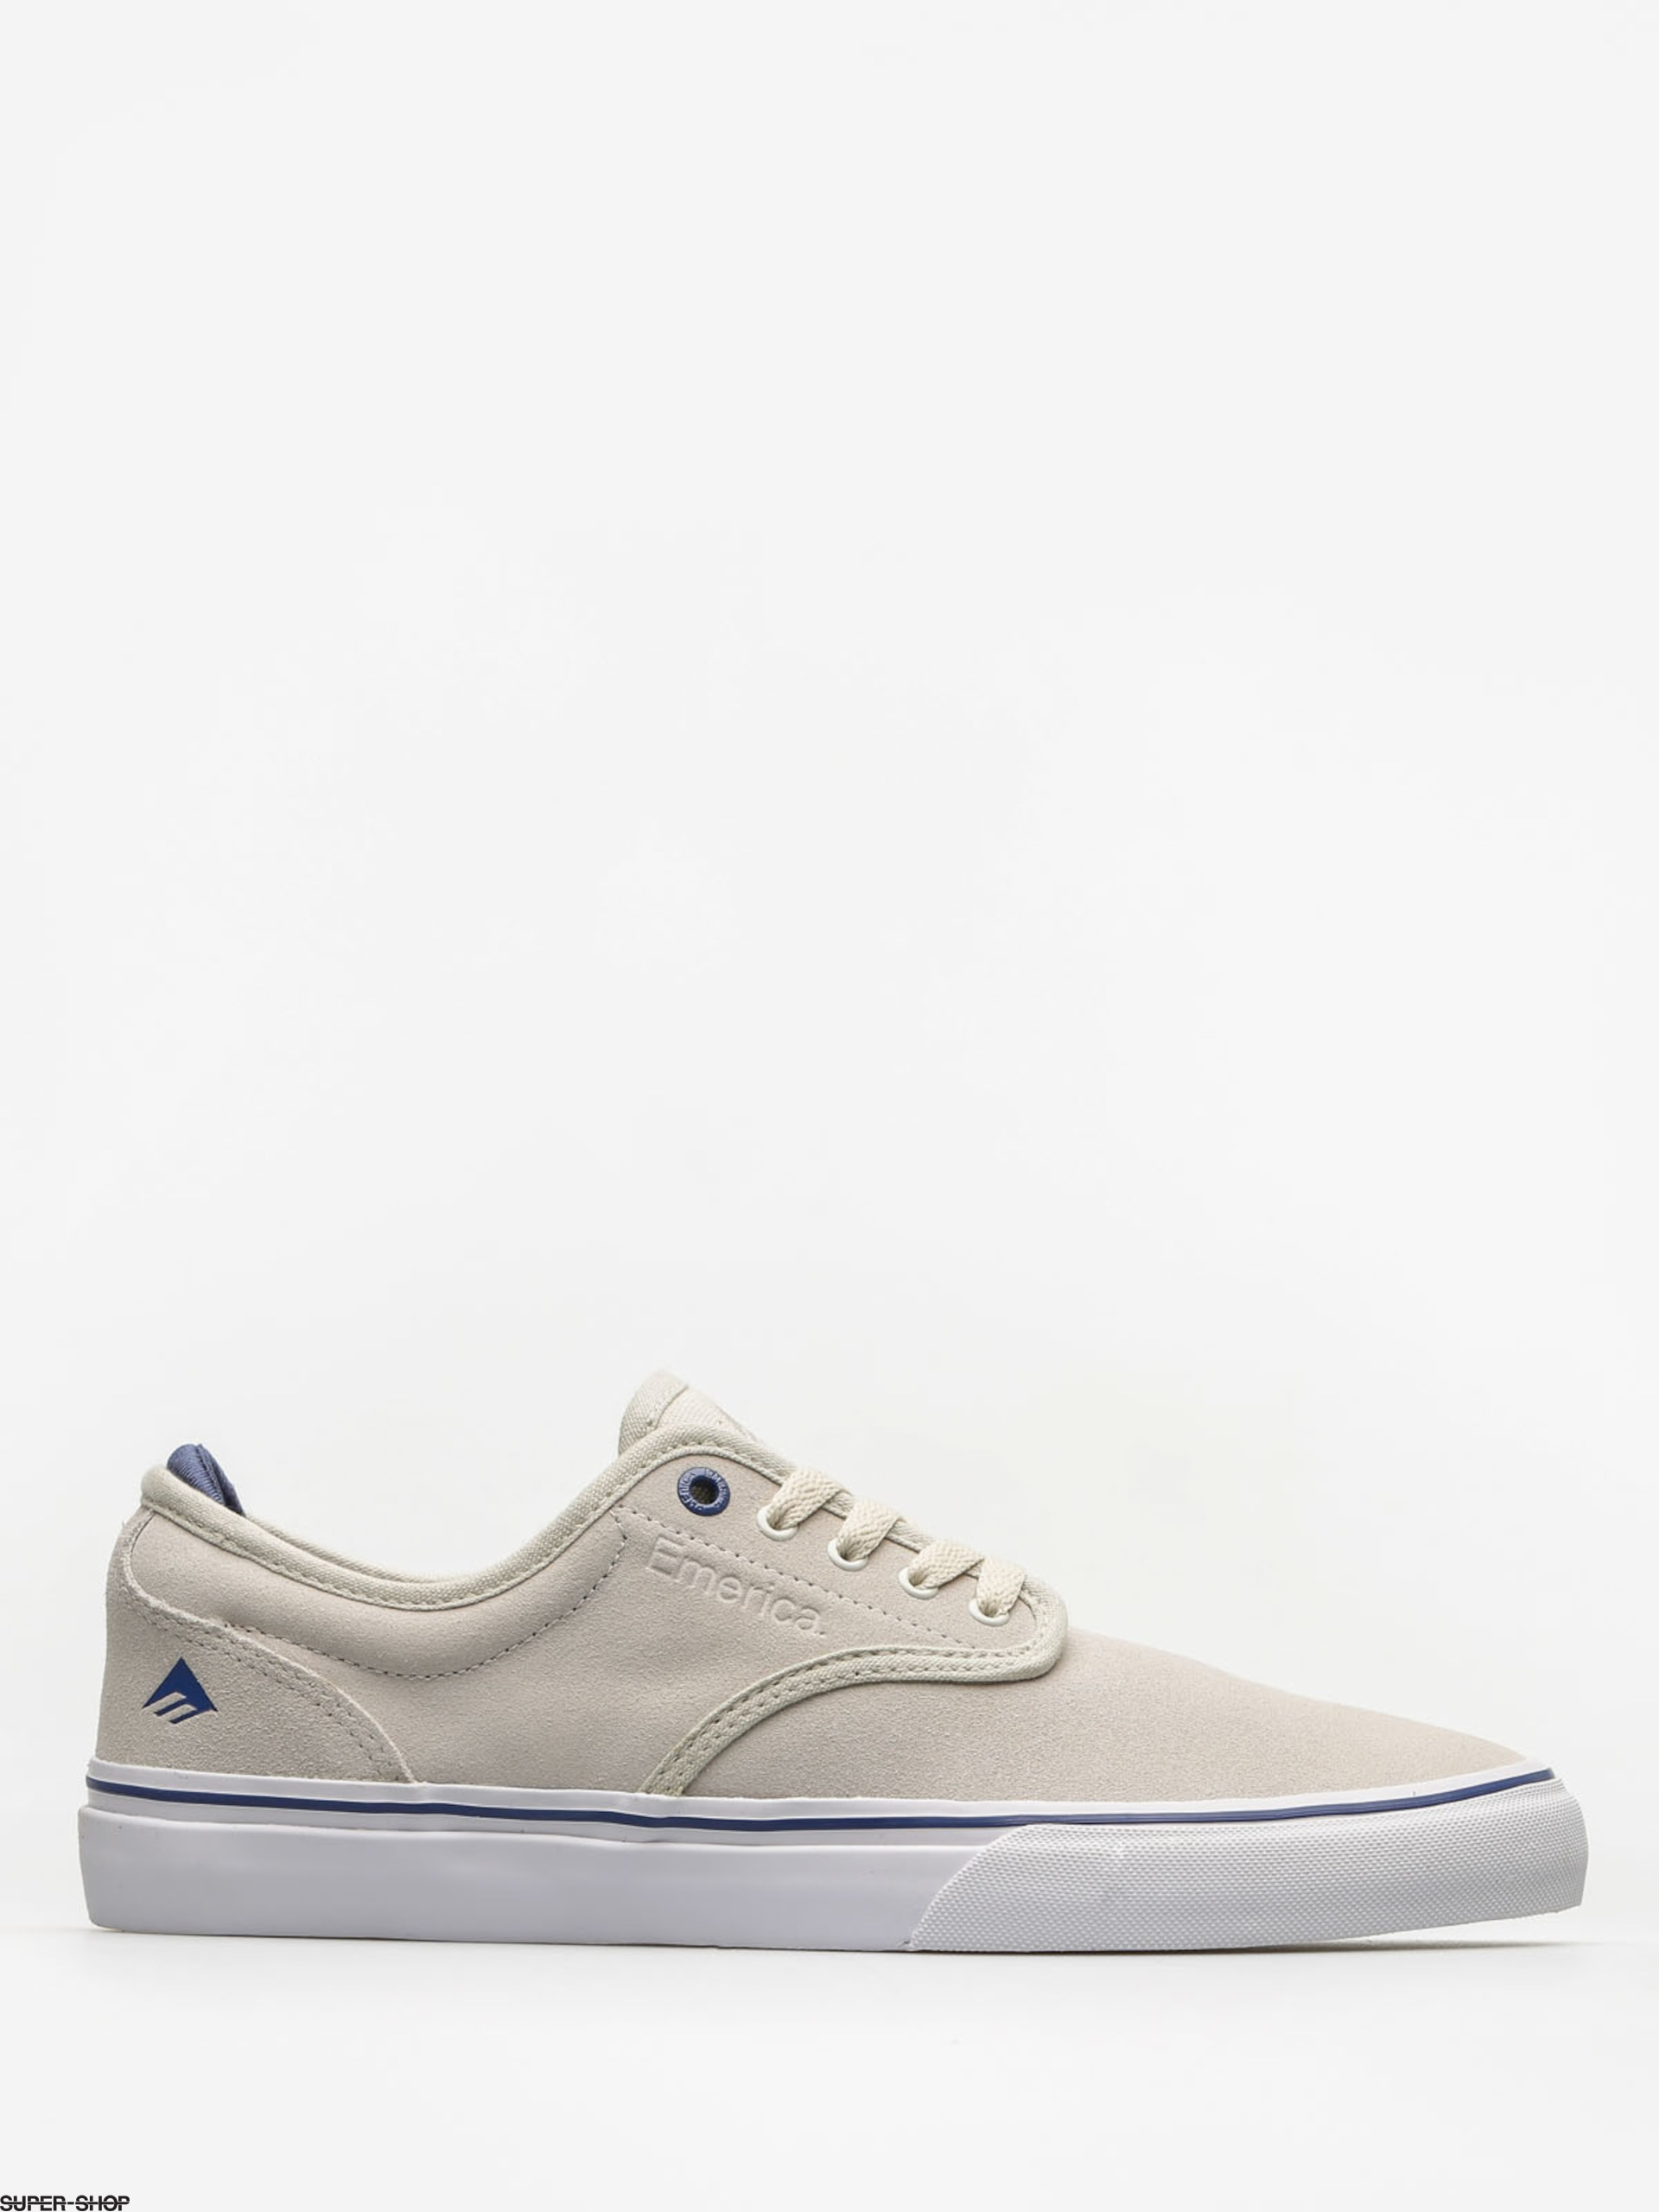 Emerica Shoes Wino G6 X Eniz (light grey/navy)